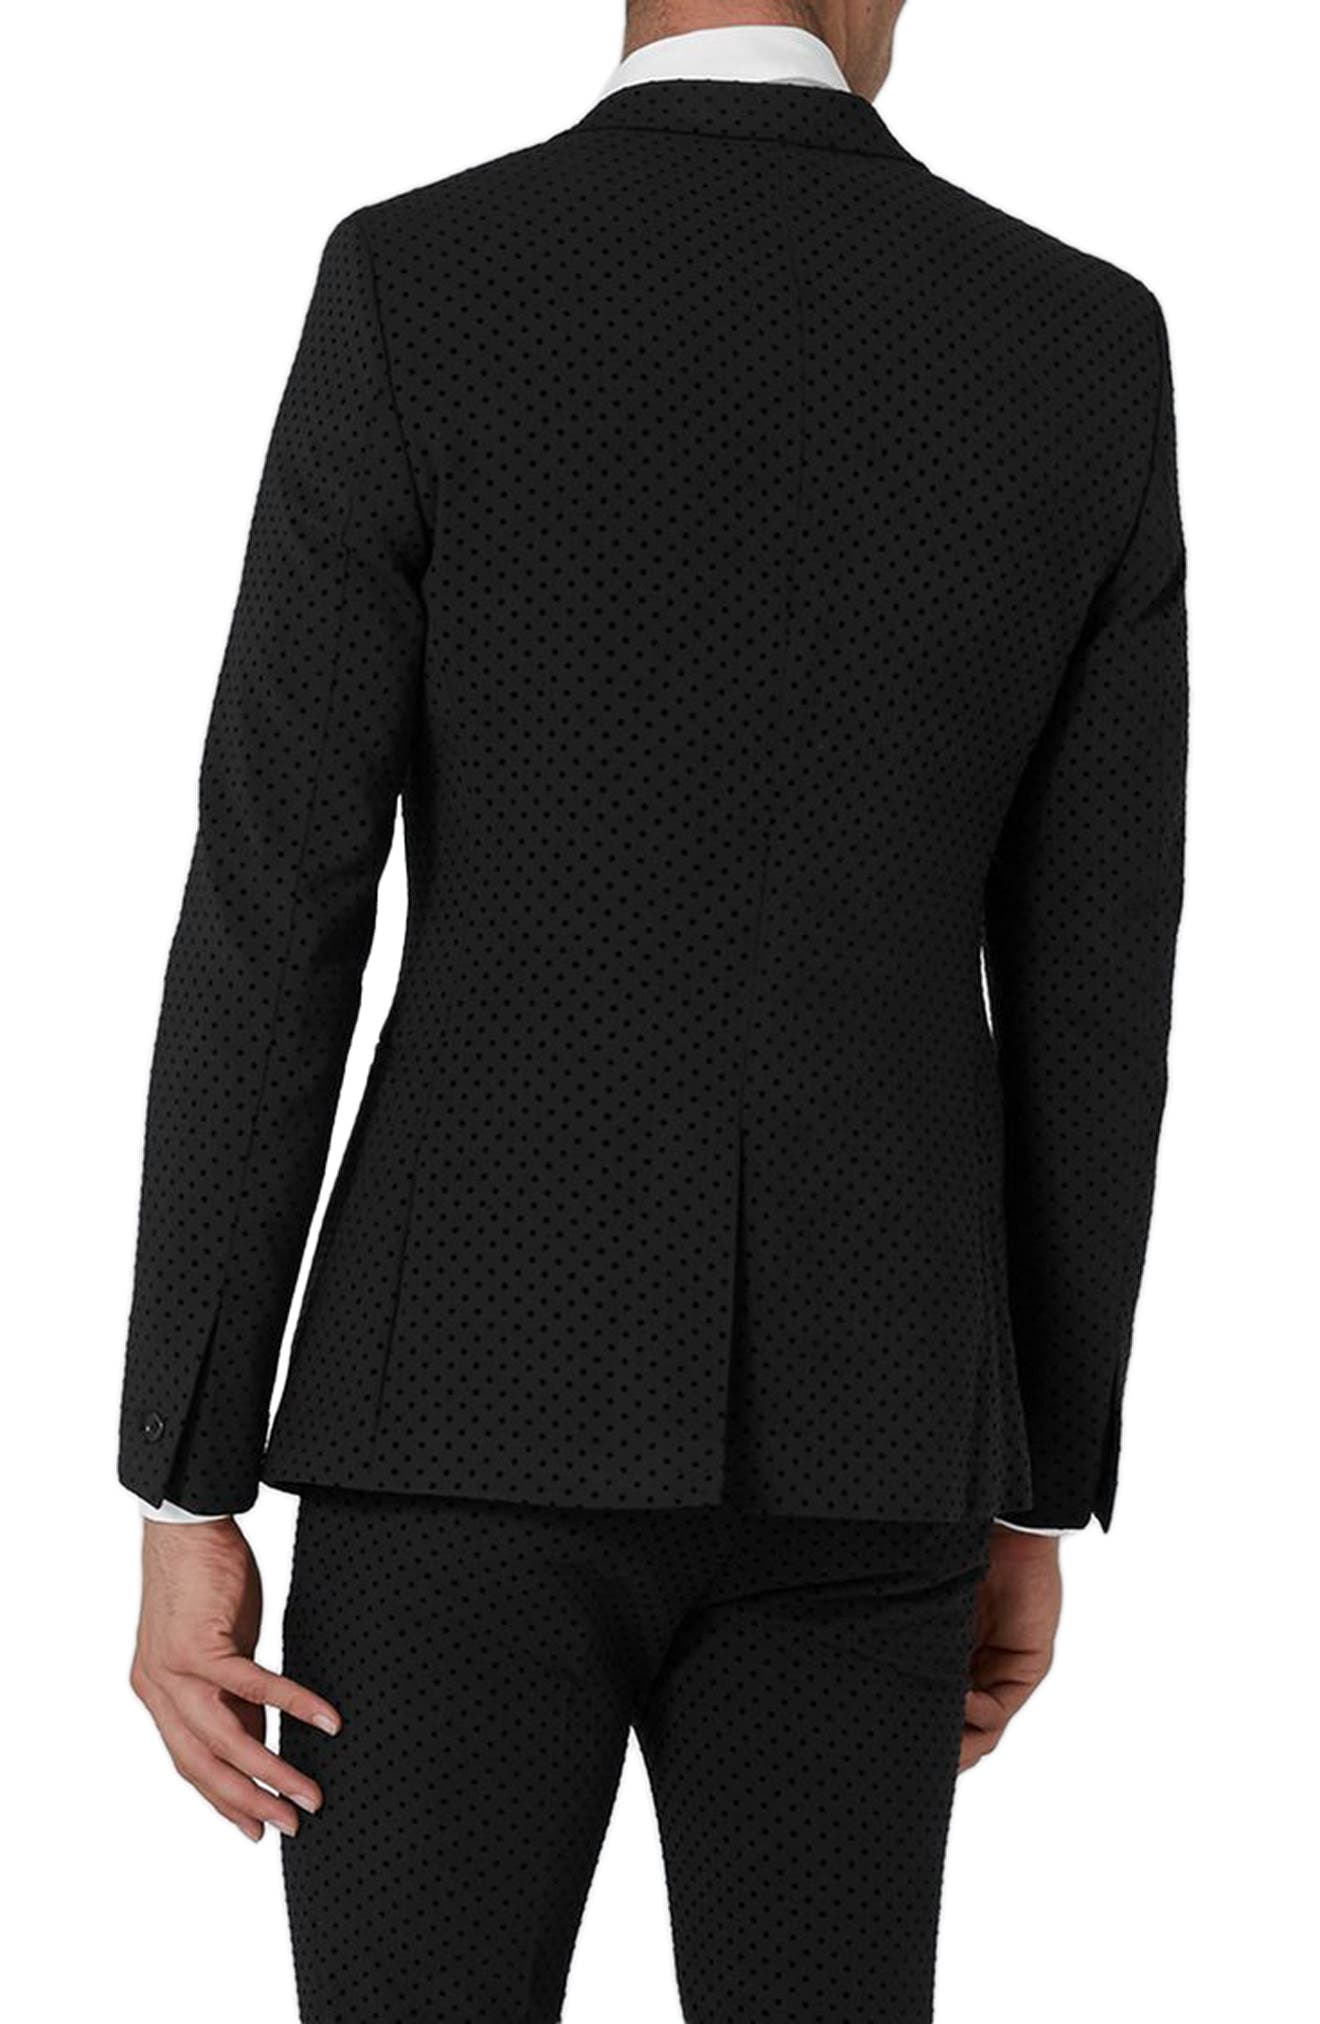 Dotted Ultra Skinny Fit Suit Jacket,                             Alternate thumbnail 2, color,                             001